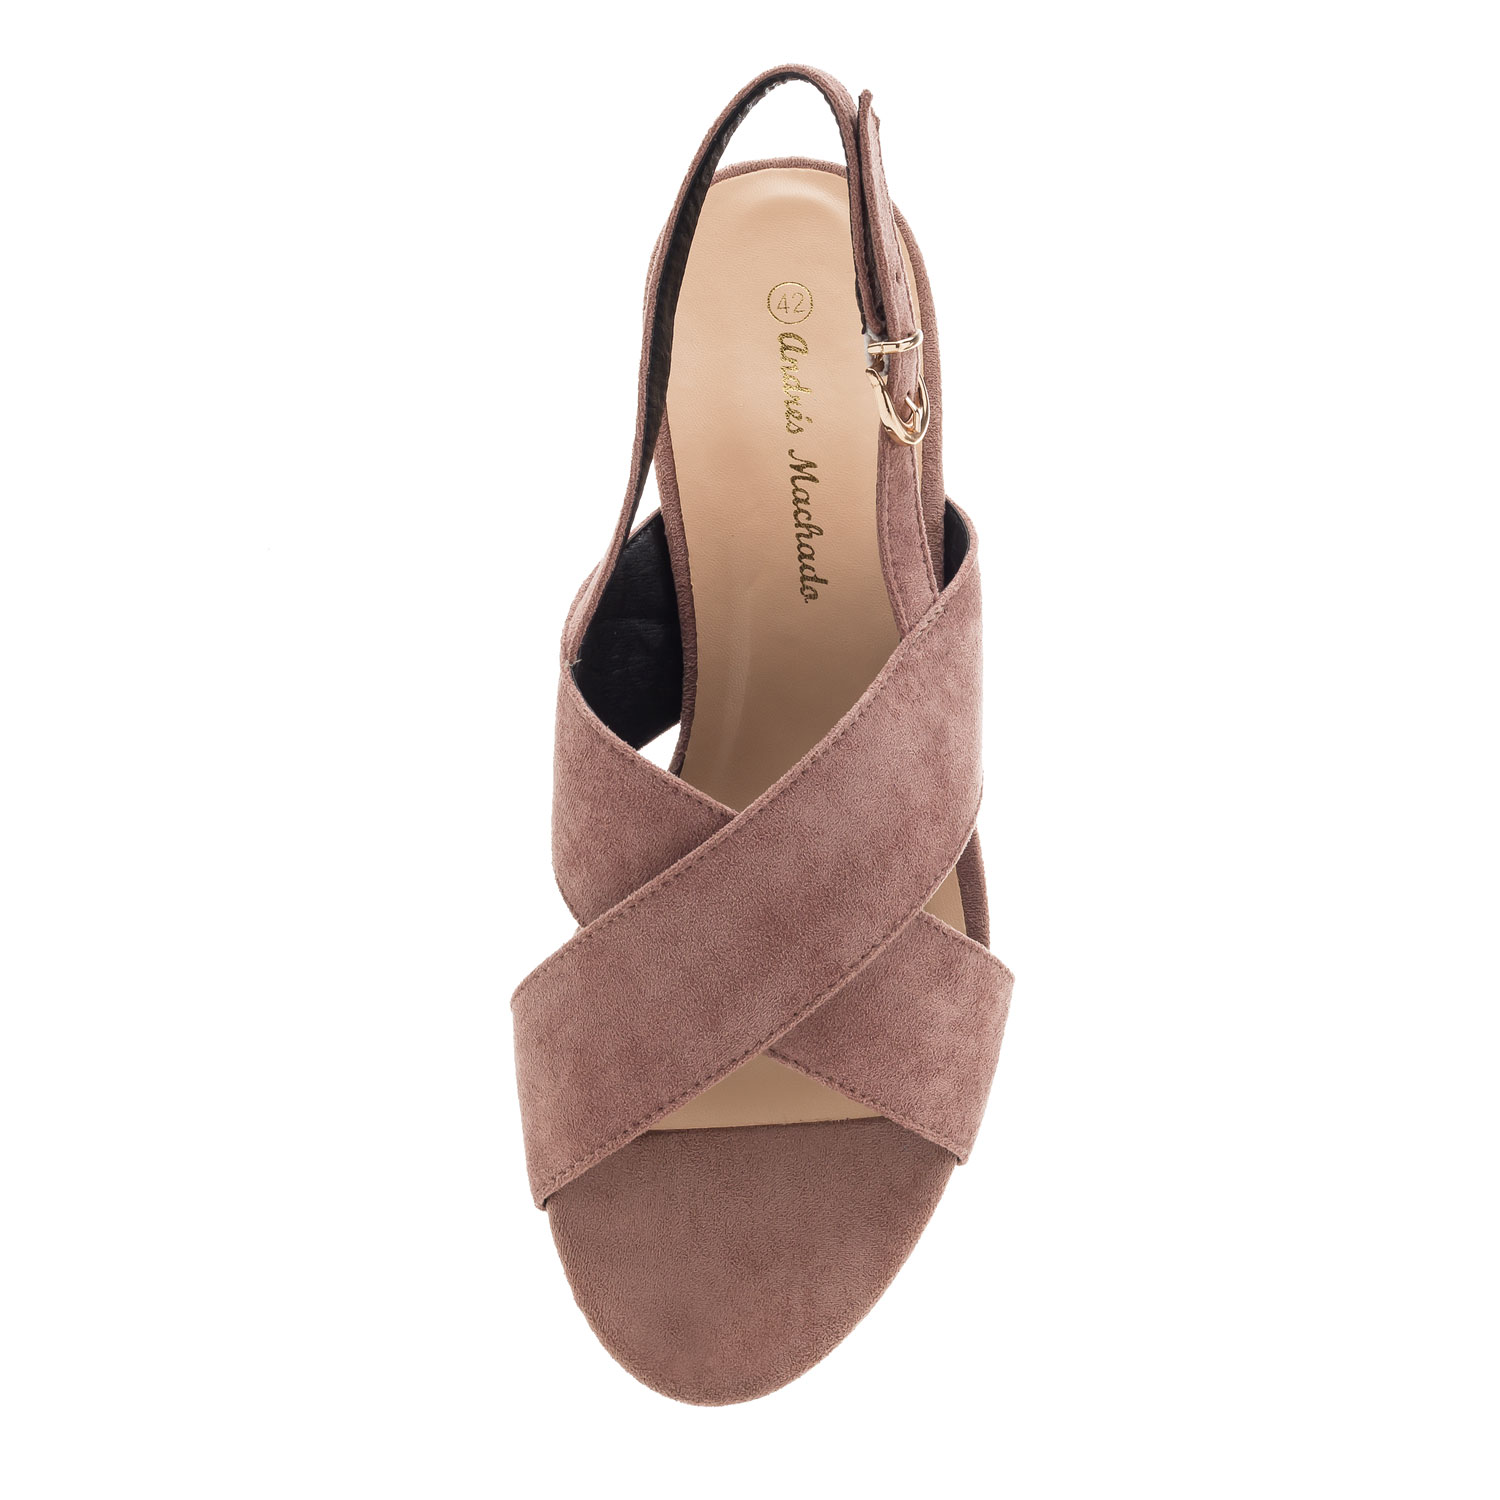 Slingback Cross-band Sandals in Nude Suede